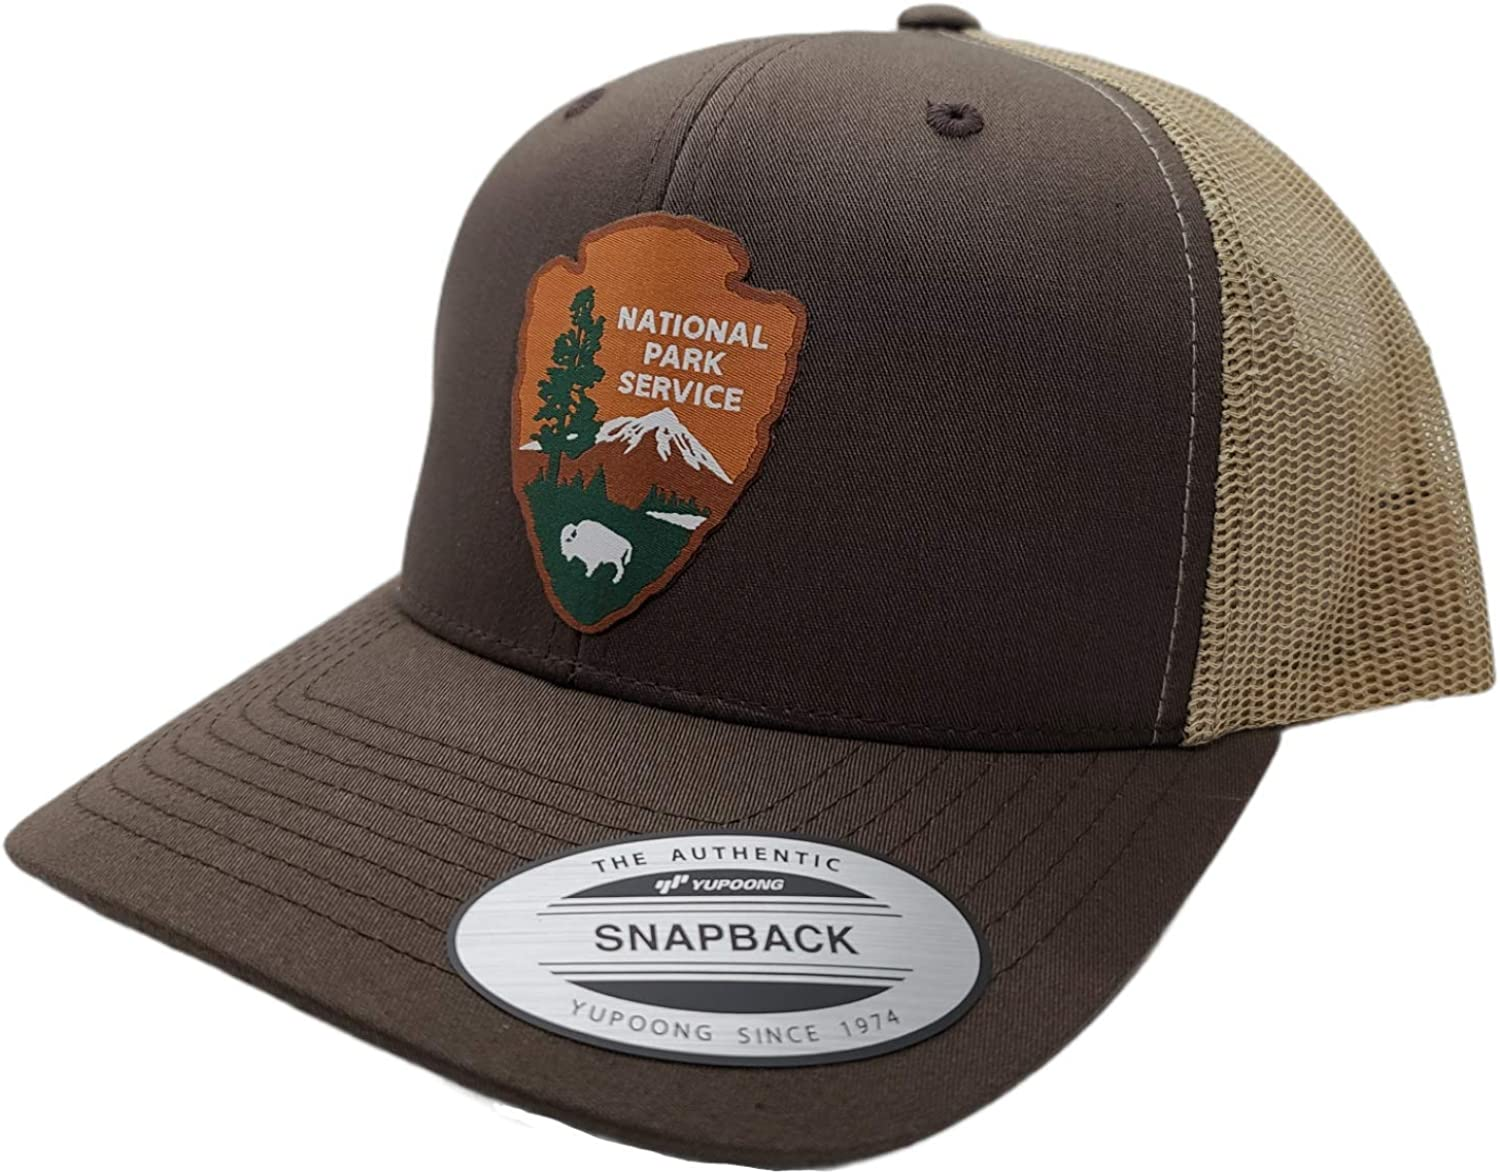 National Park Service Mens Snapback Trucker with HAT Max 56% OFF MESH Max 41% OFF Woven